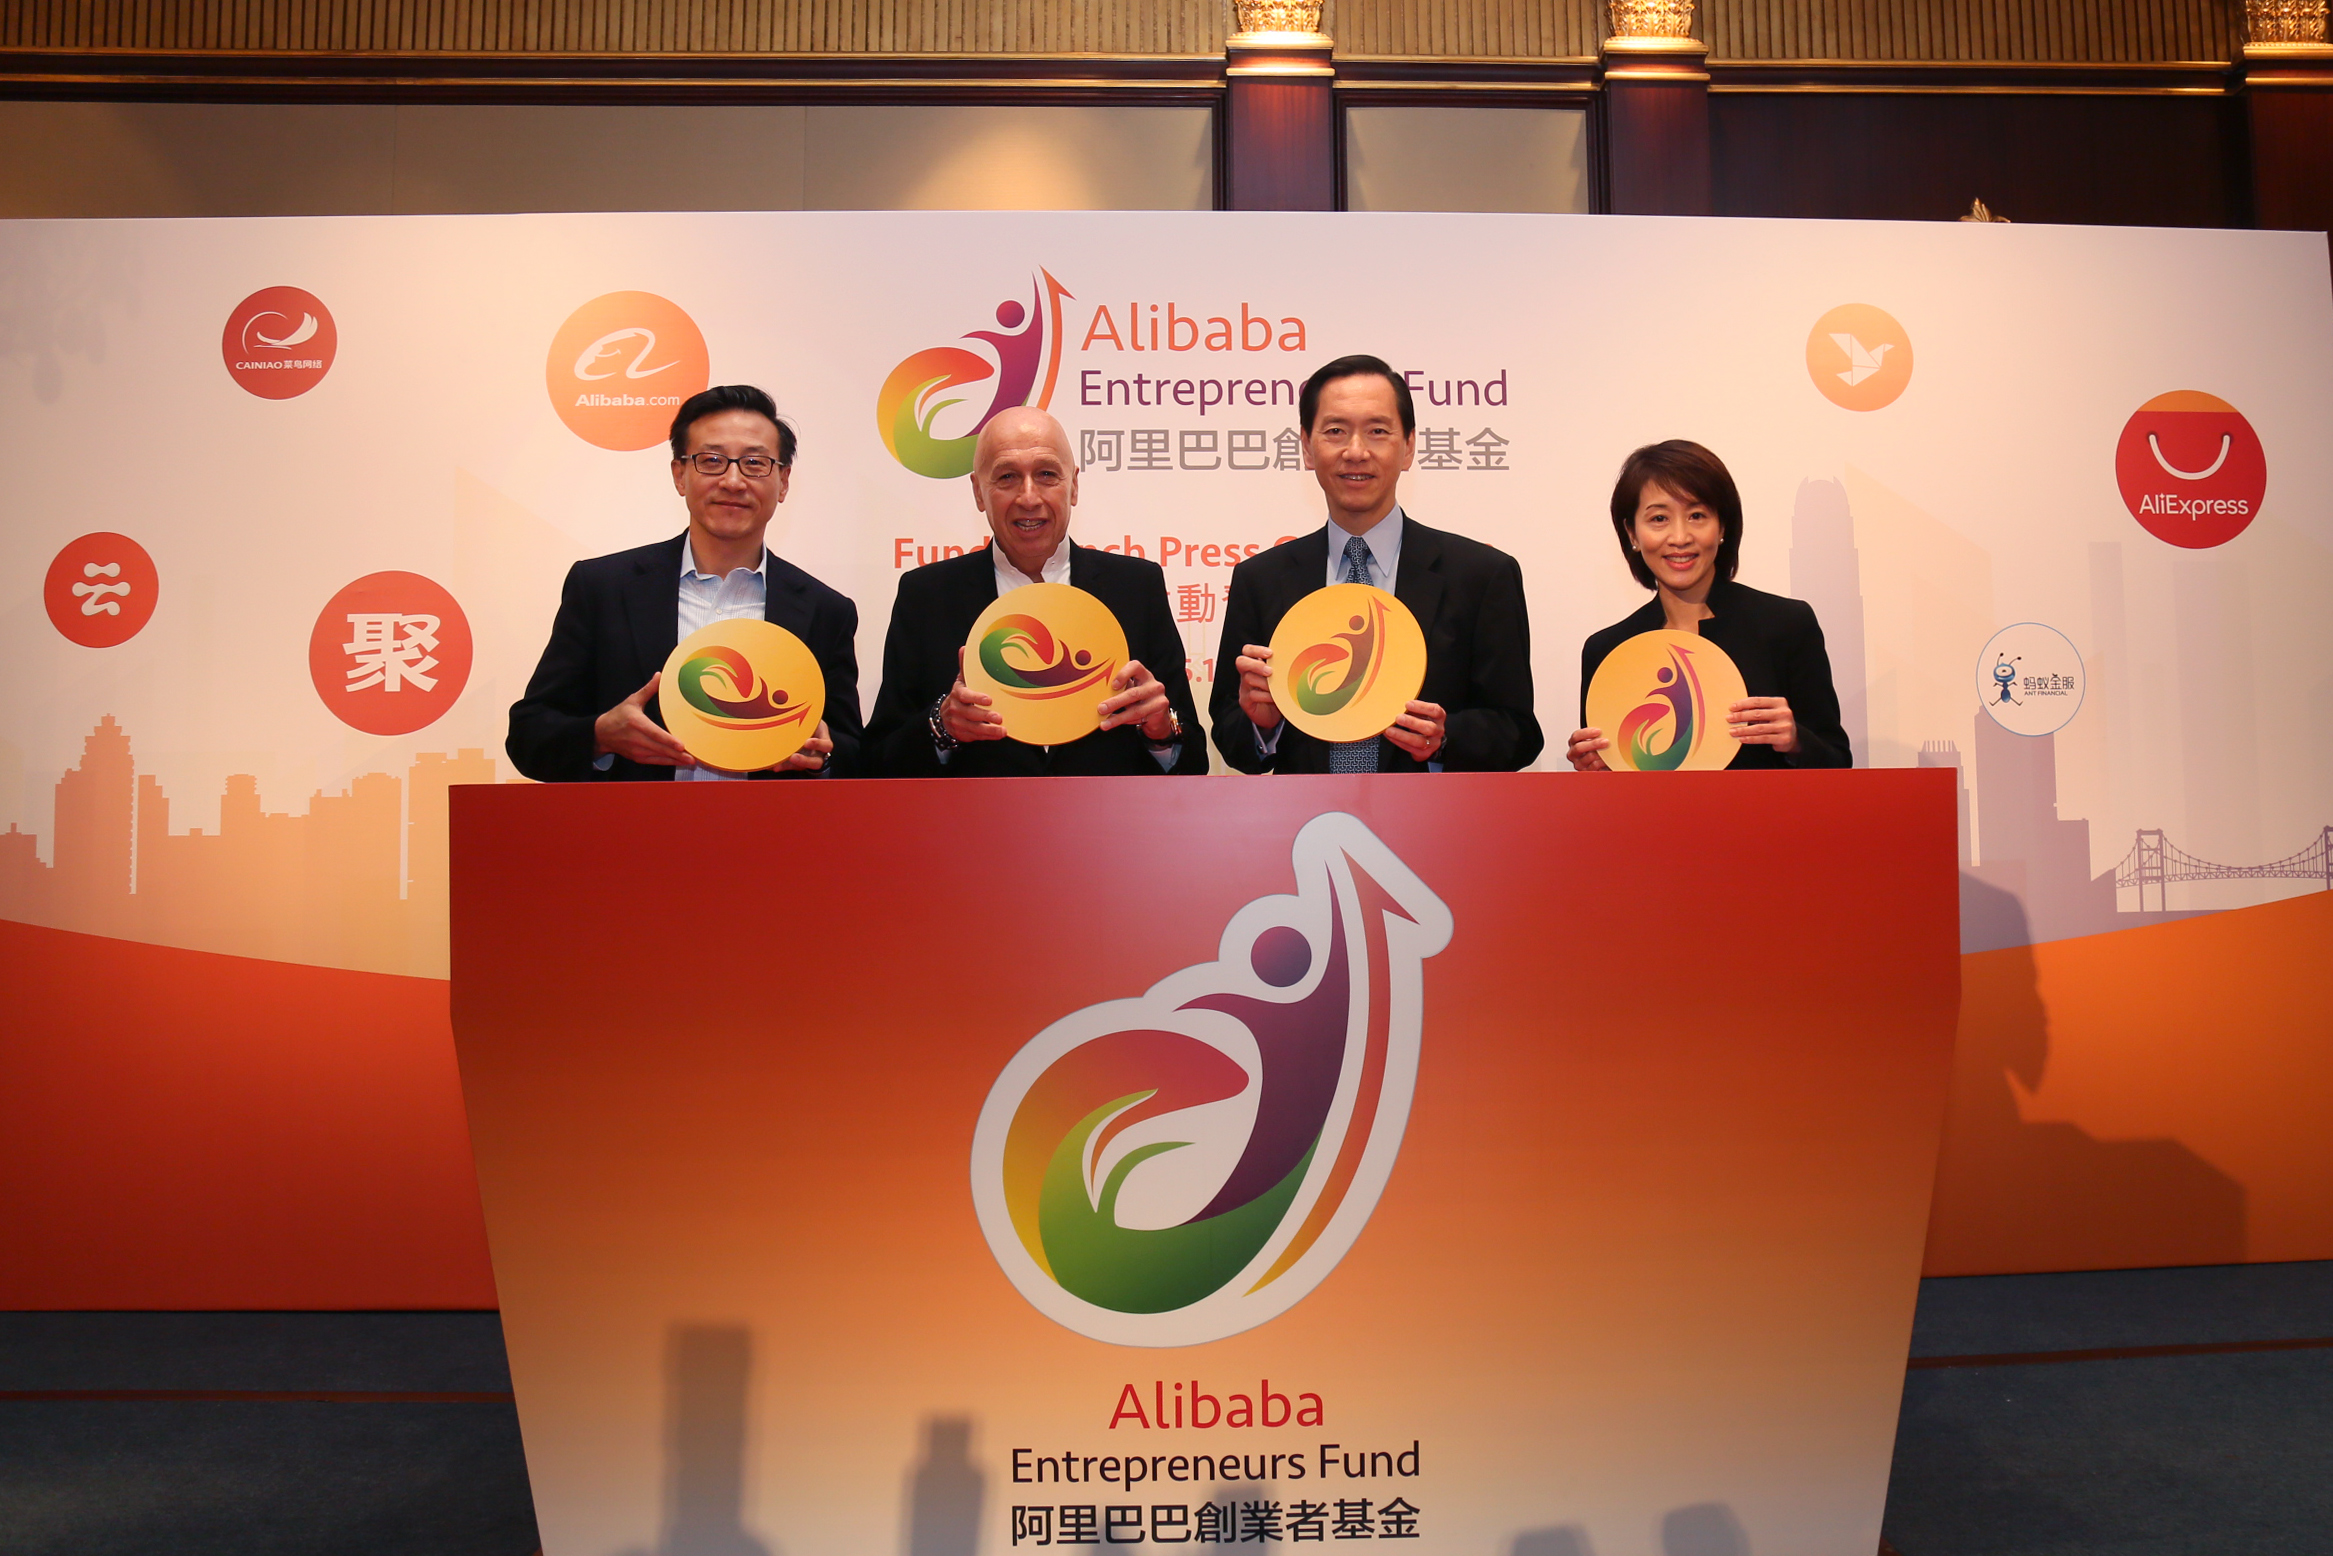 Alibaba Group Holding Limited announced the official launch of its Entrepreneurs Fund for Hong Kong